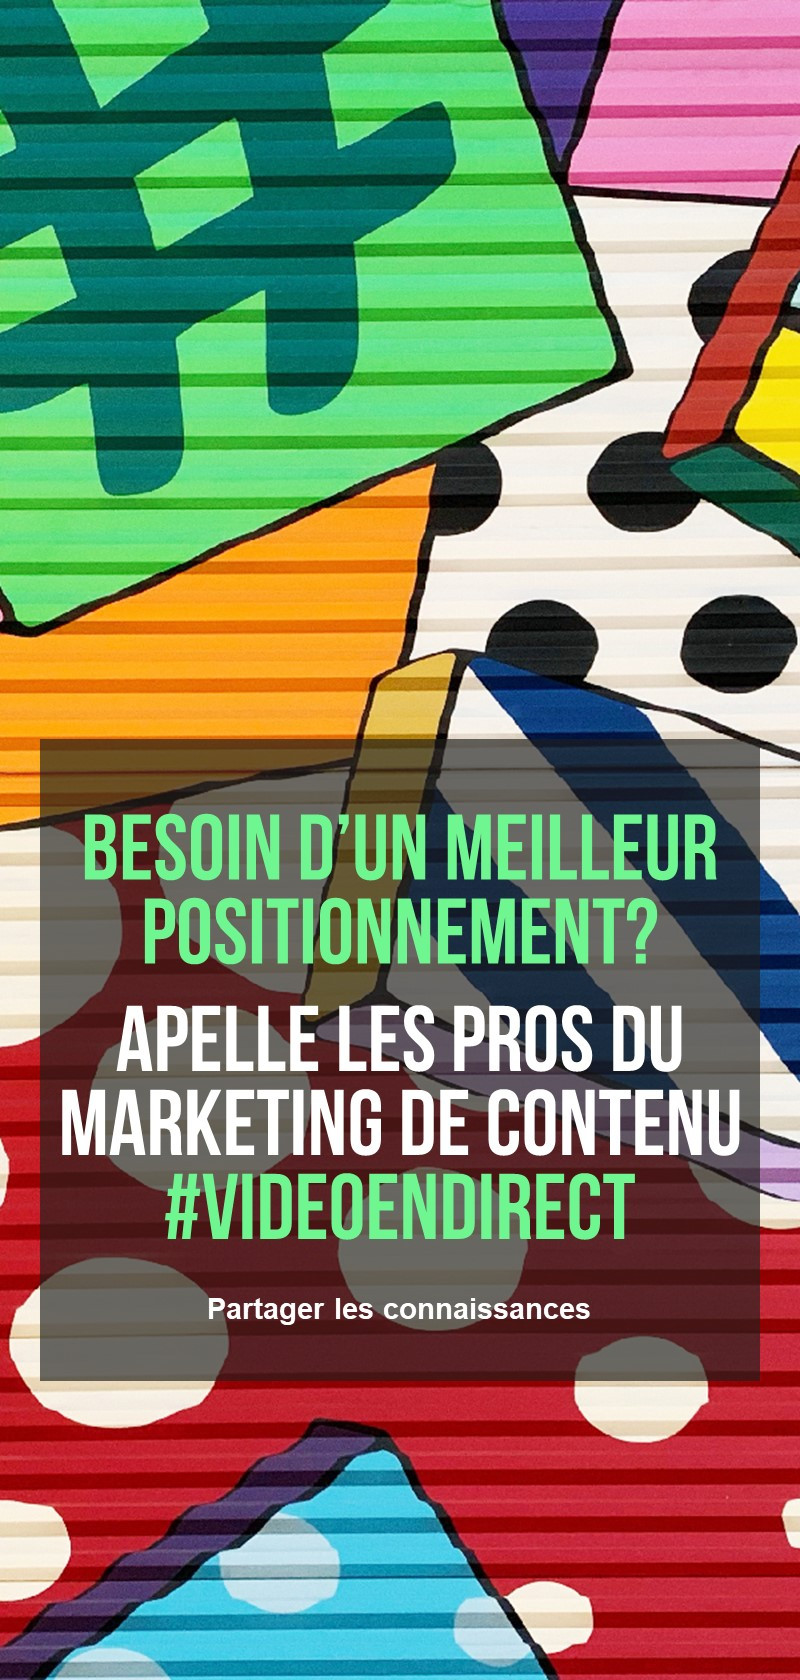 Professionnels du marketing de contenu